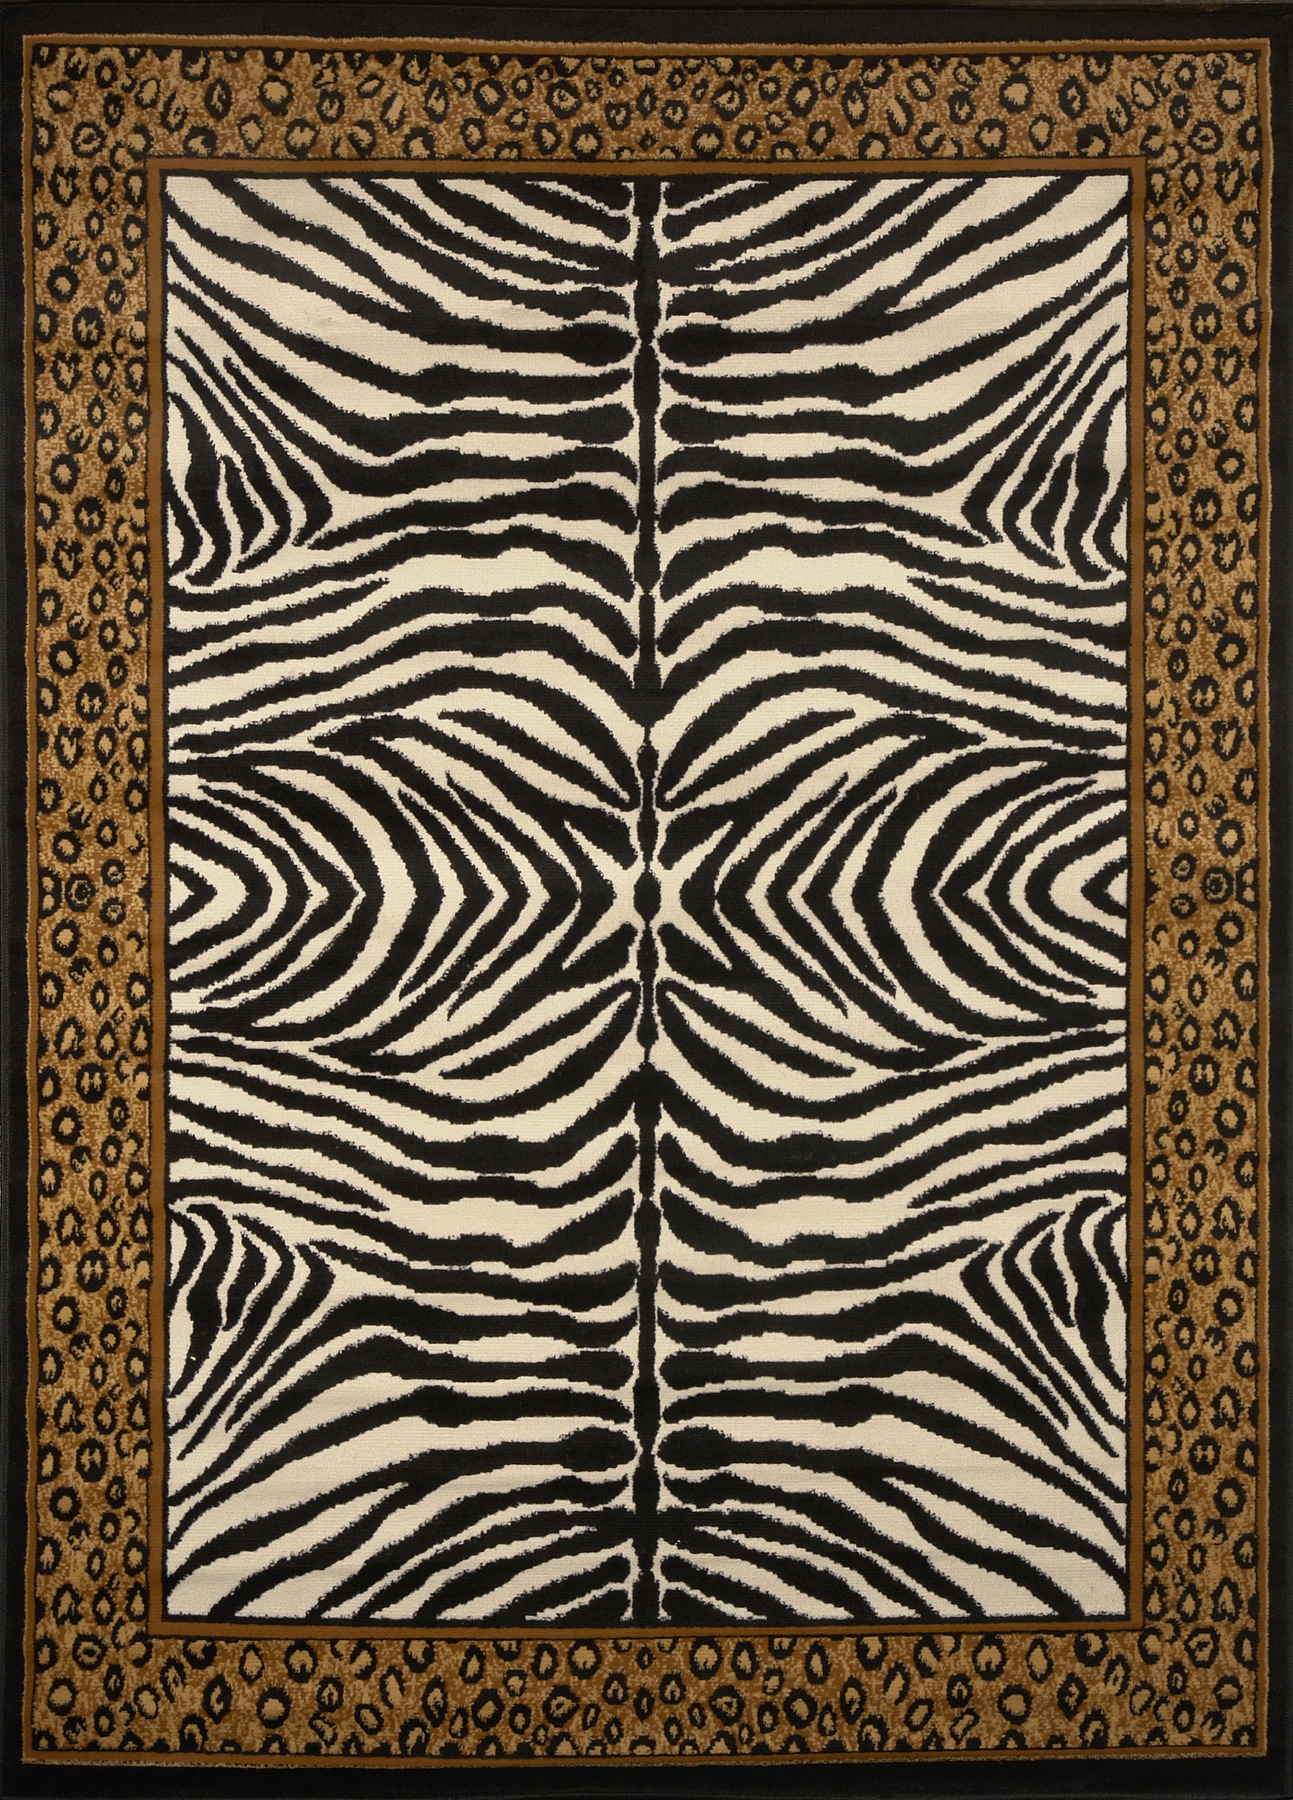 Modern Leopard Animal Print Area Rug 8x11 Zebra Safari